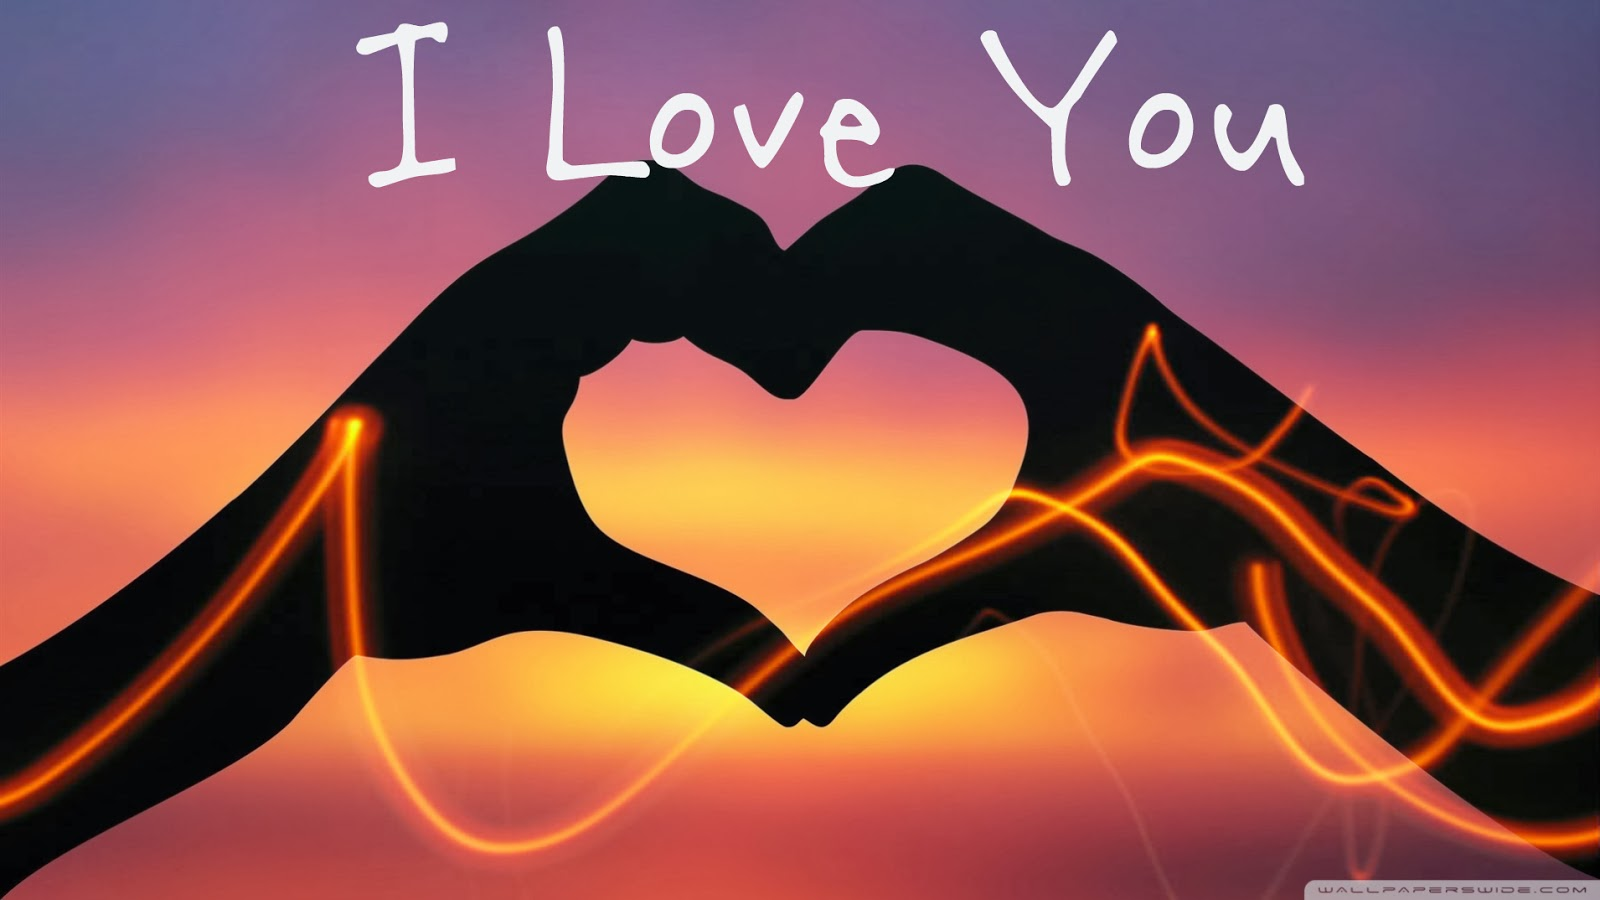 Wallpaper I Love You 3d : I Love You wallpaper 1600x900 #43292